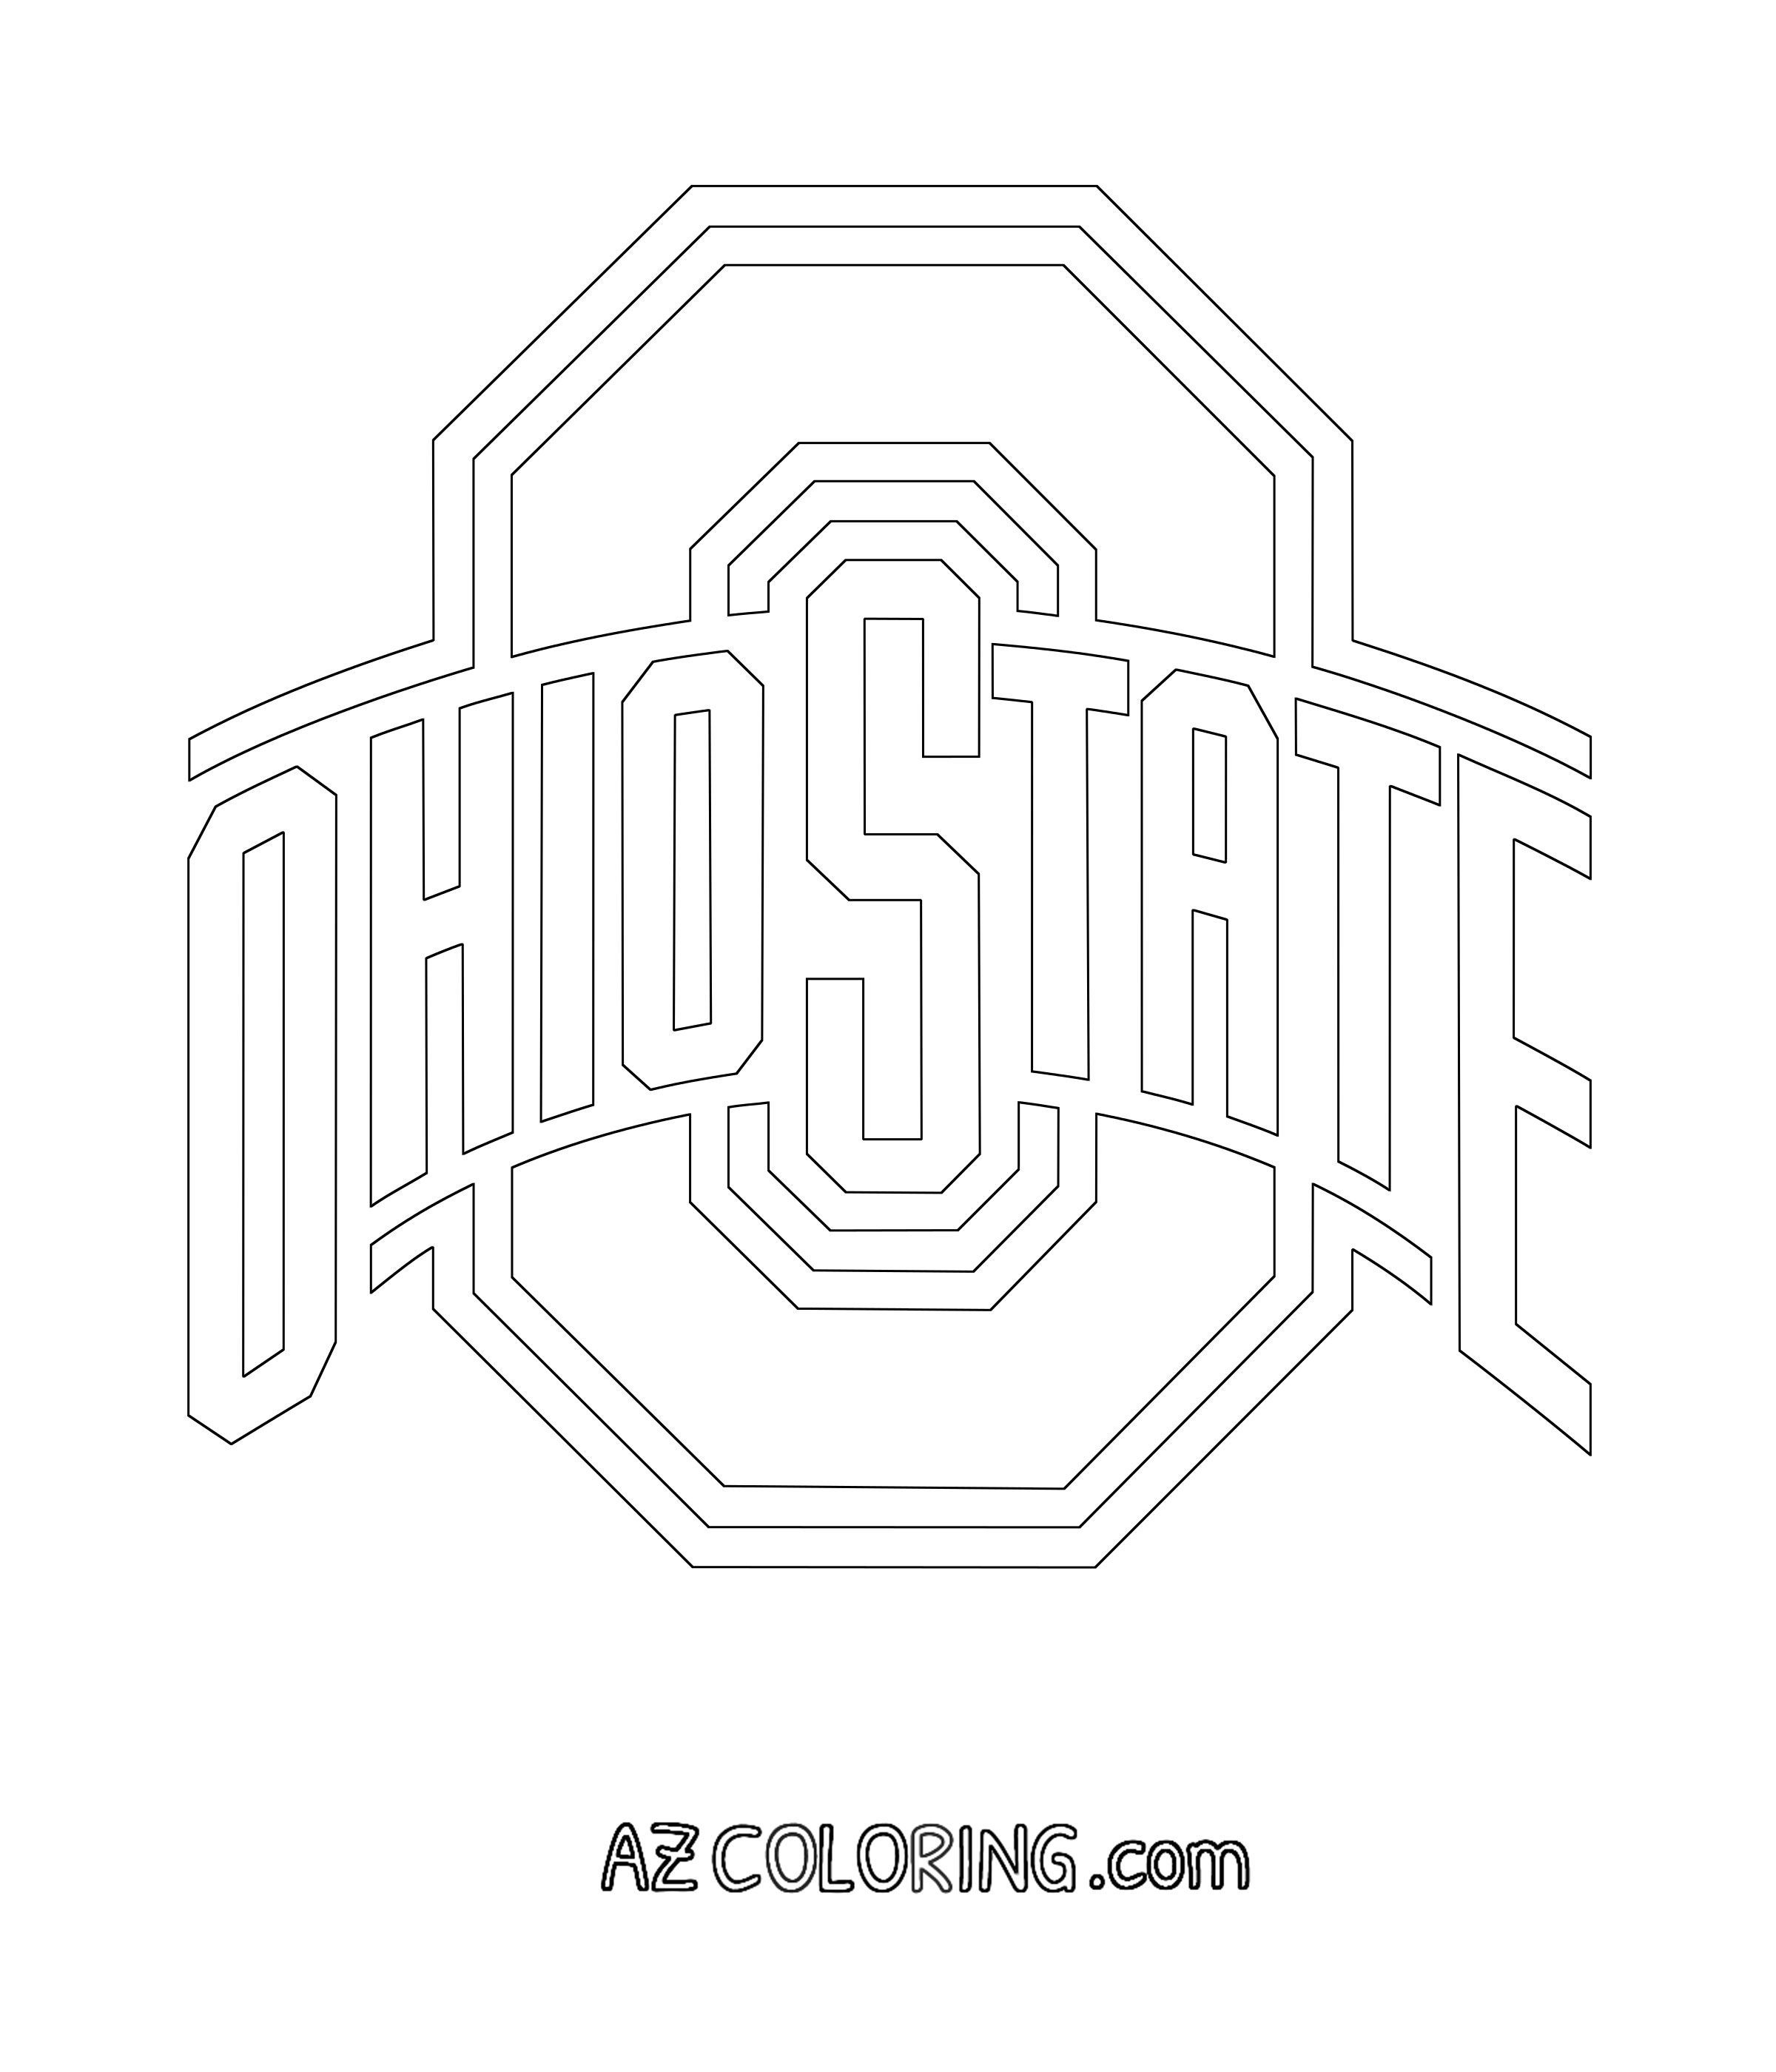 Ohio State Buckeyes Brutus Coloring Pages #ohiostatebuckeyes #brutus #buckeyes #coloring #ohio #pages #state #2020